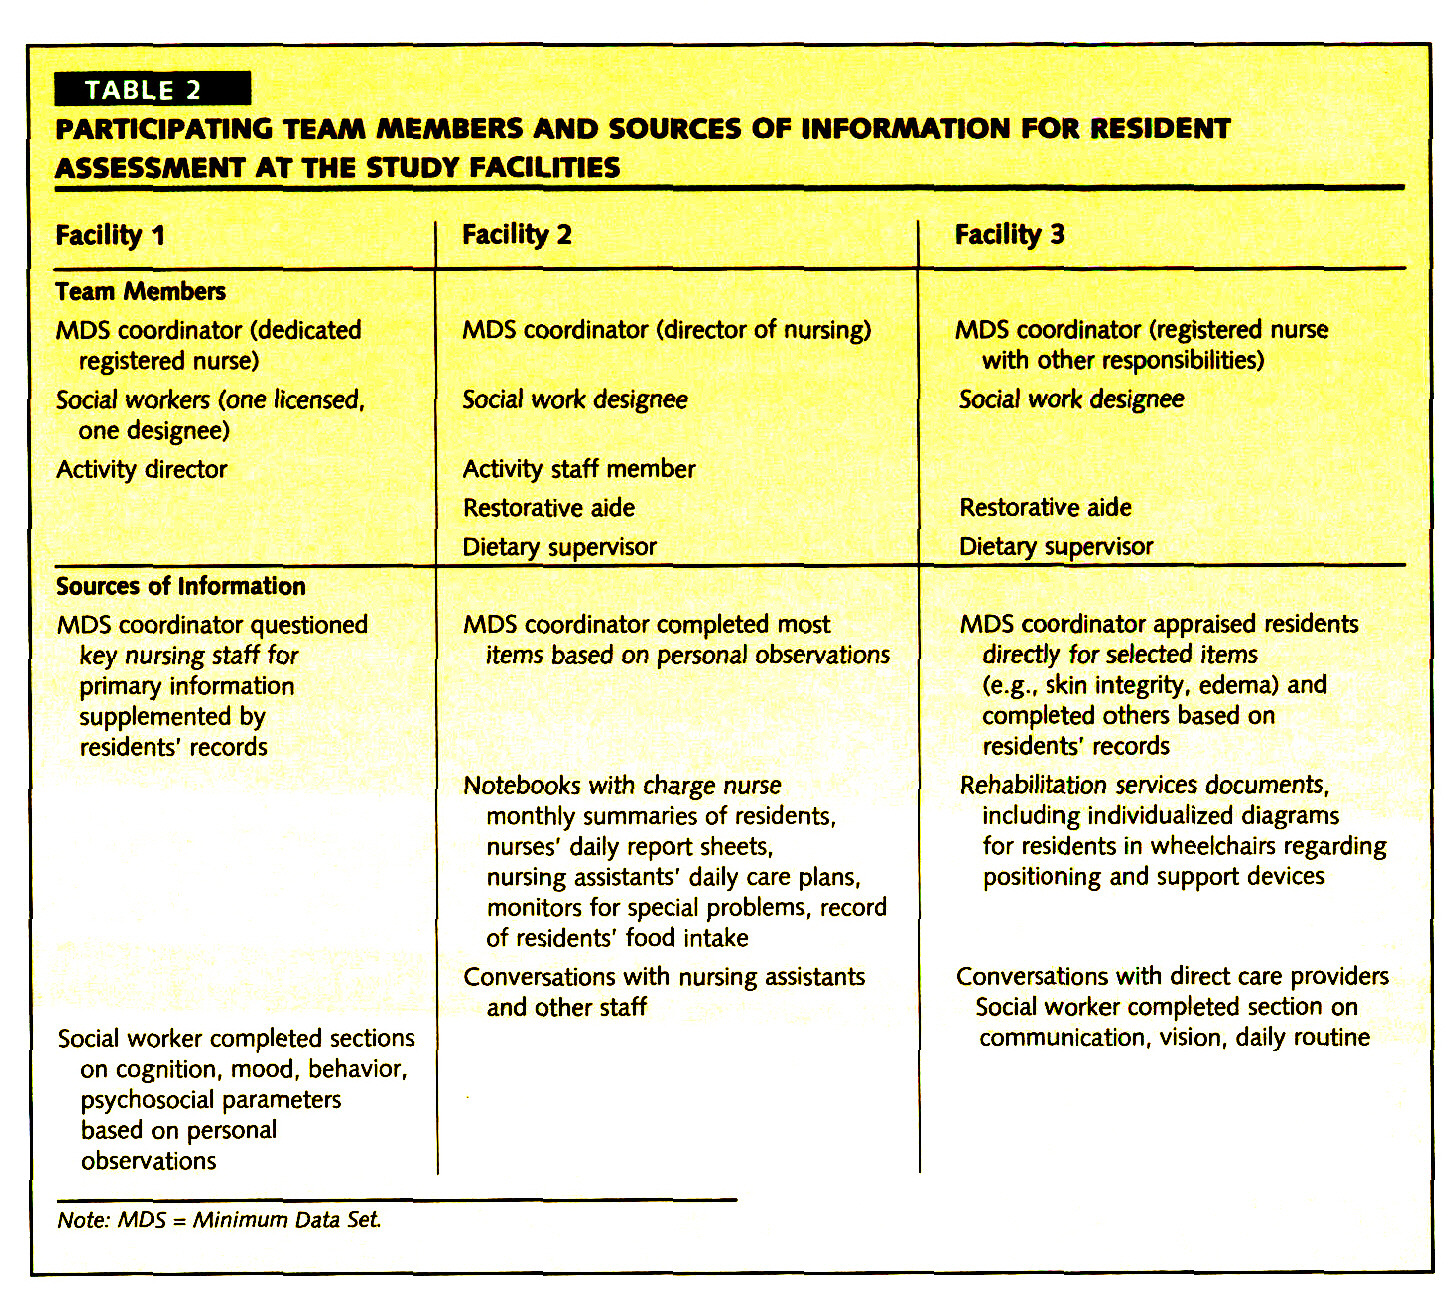 TABLE 2PARTICIPATING TEAM MEMBERS AND SOURCES OF INFORMATION FOR RESIDENT ASSESSMENT AT THE STUDY FACILITIES